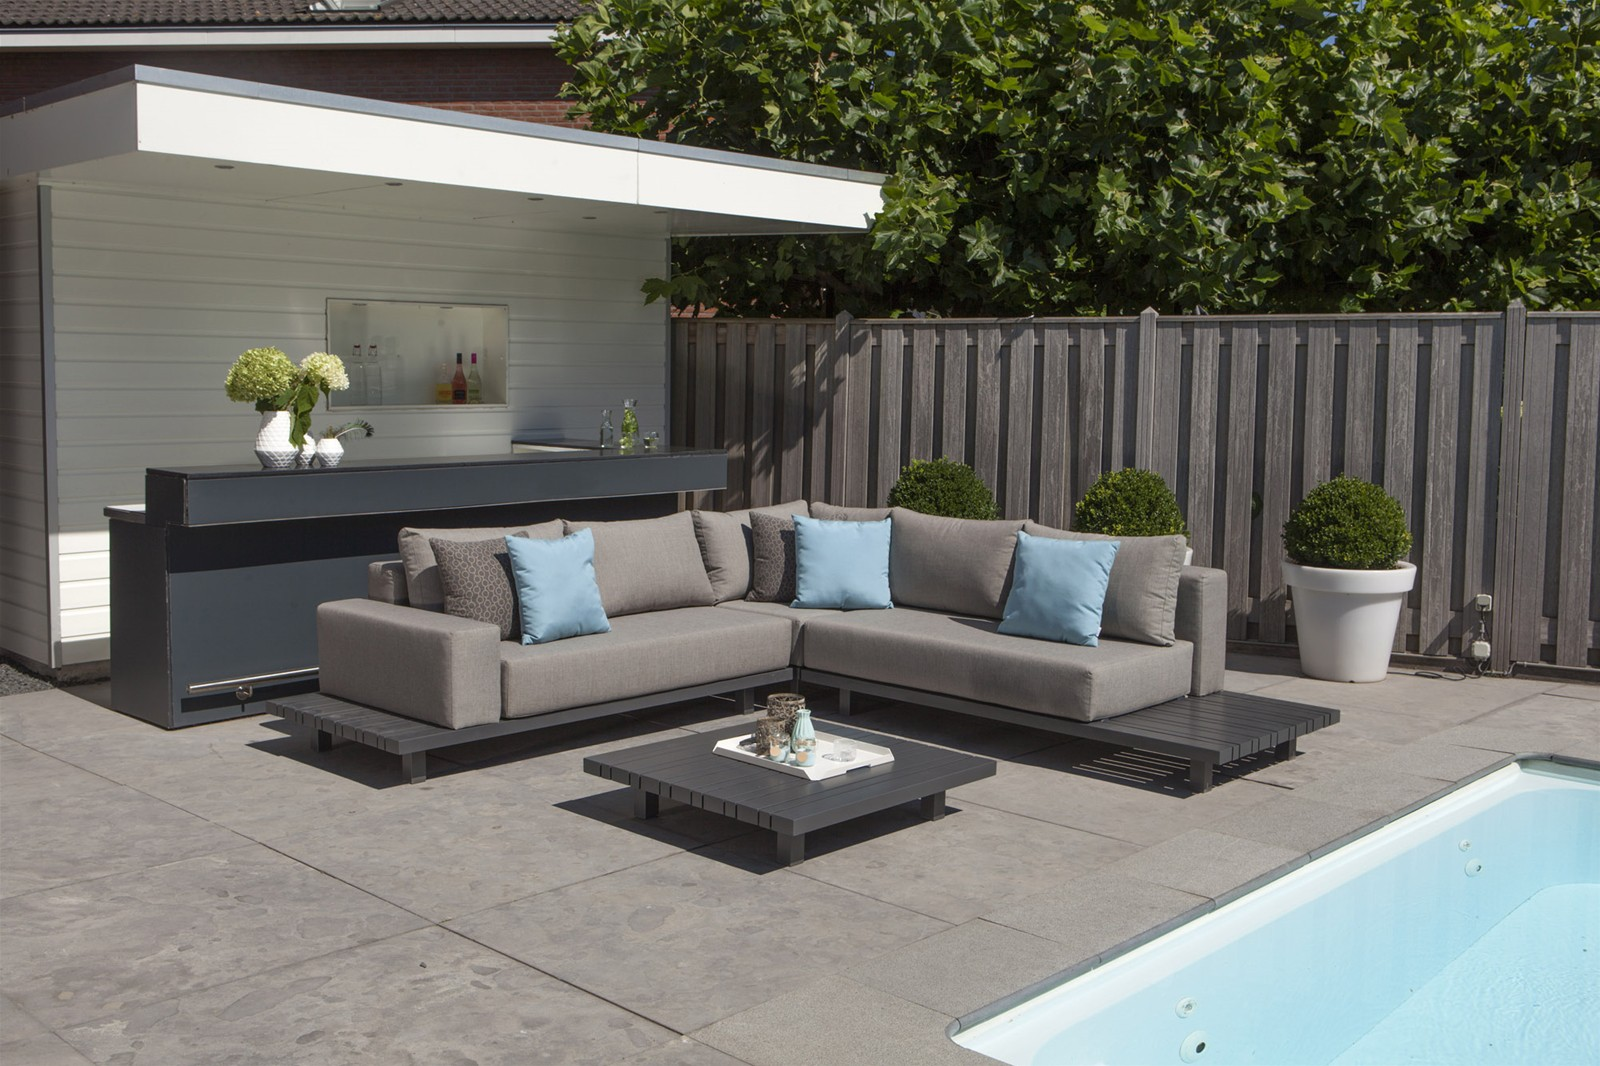 Chill Lounge Paradiso Lounge - Outdoor Gartenlounge ...